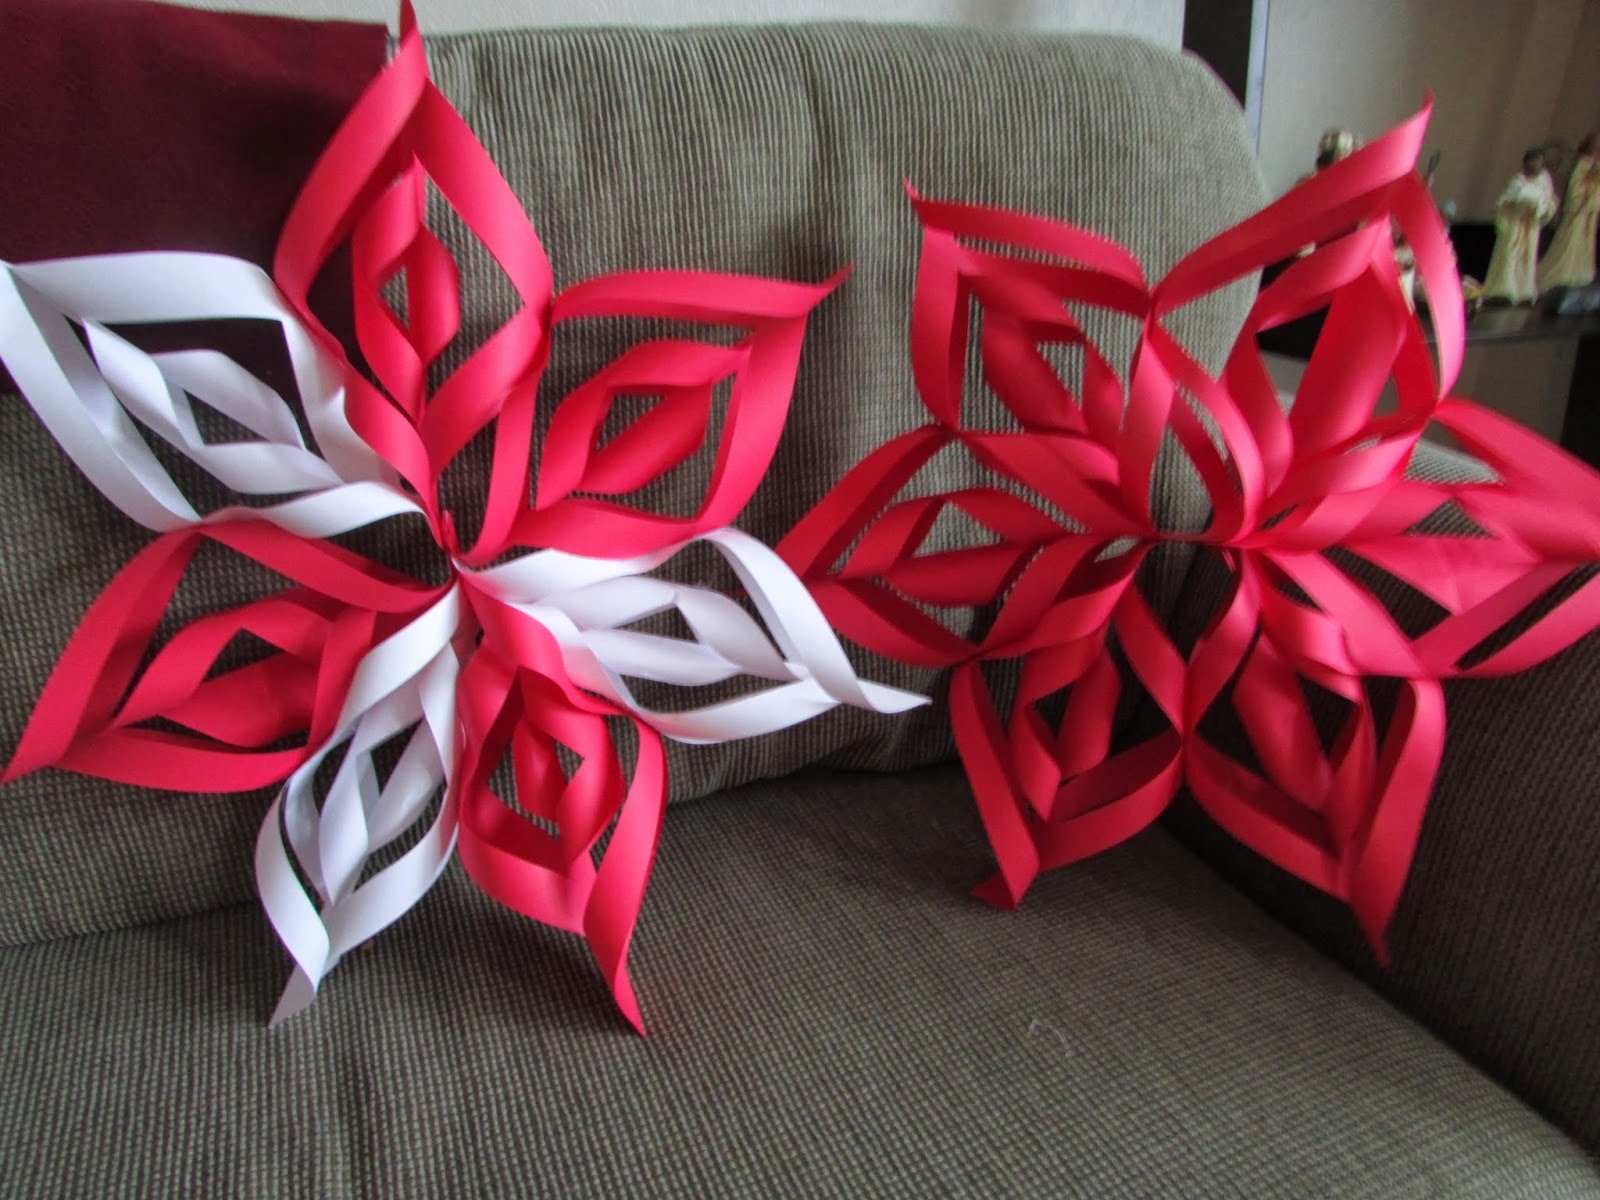 How to Make 3d Snowflakes Awesome Pbdesigns Easy 3d Paper Snowflakes